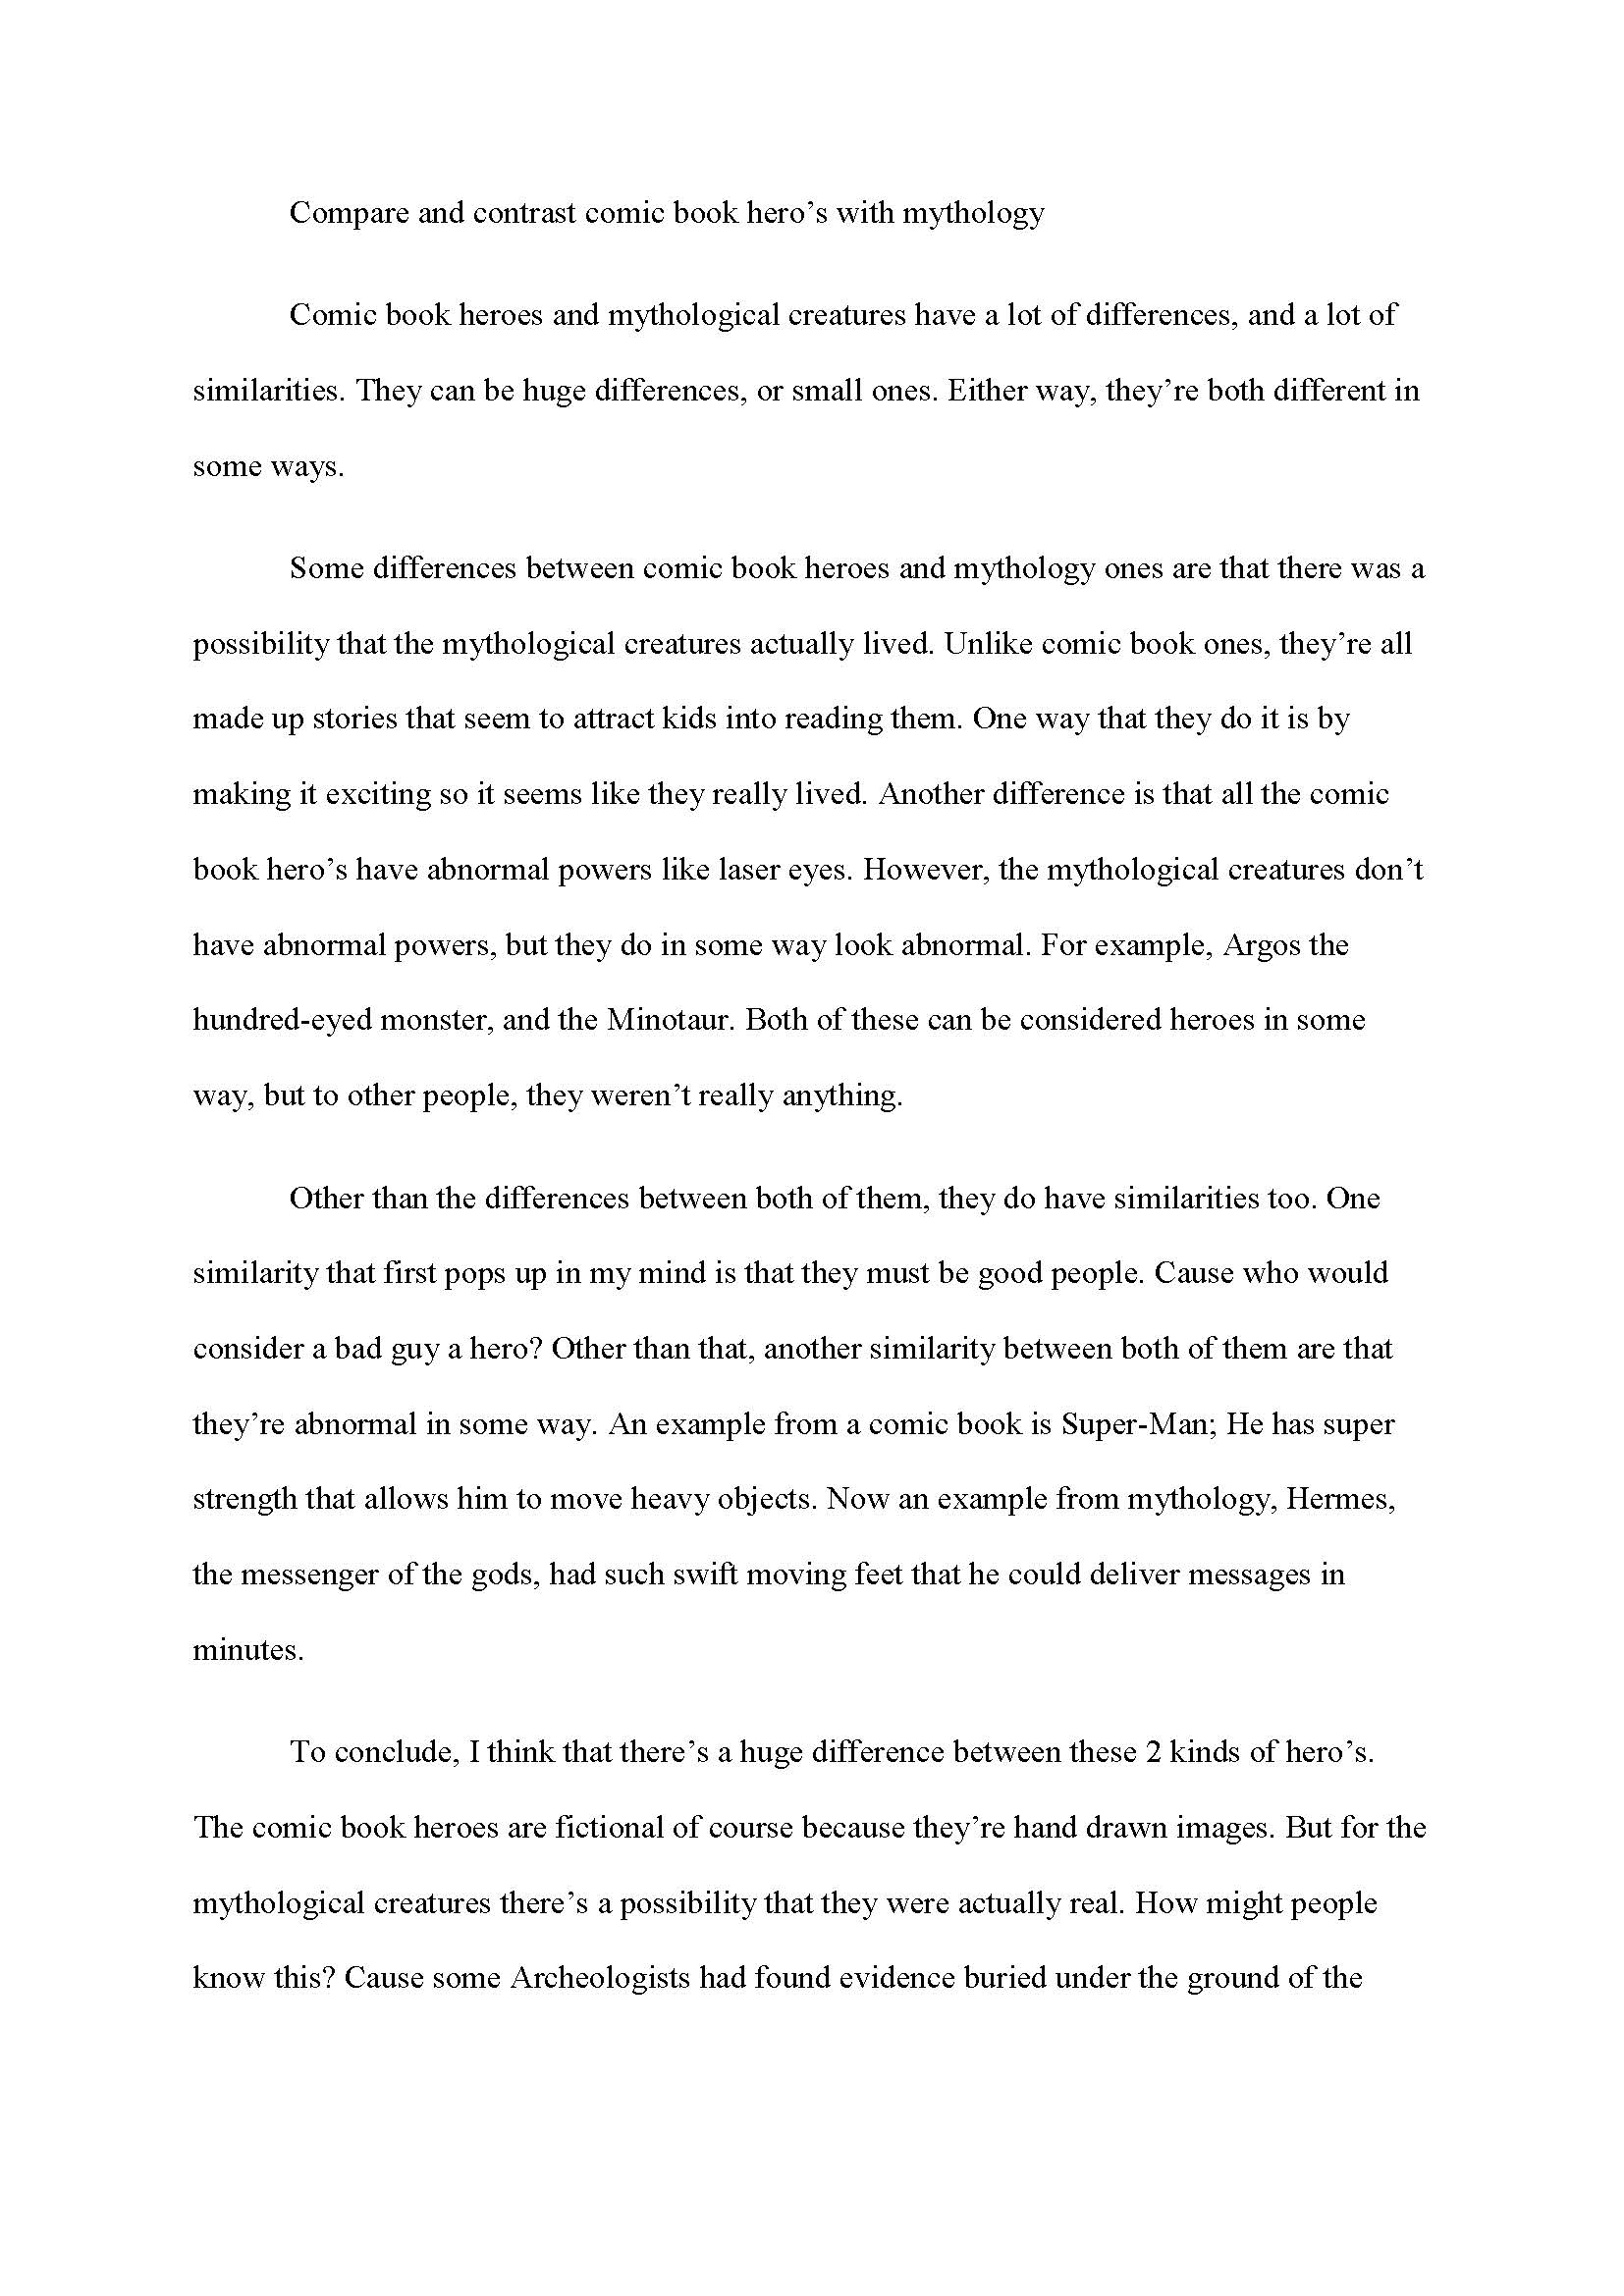 002 Compare And Contrast Essay Sample Essays Awful Free Examples For College Topics Middle School Full